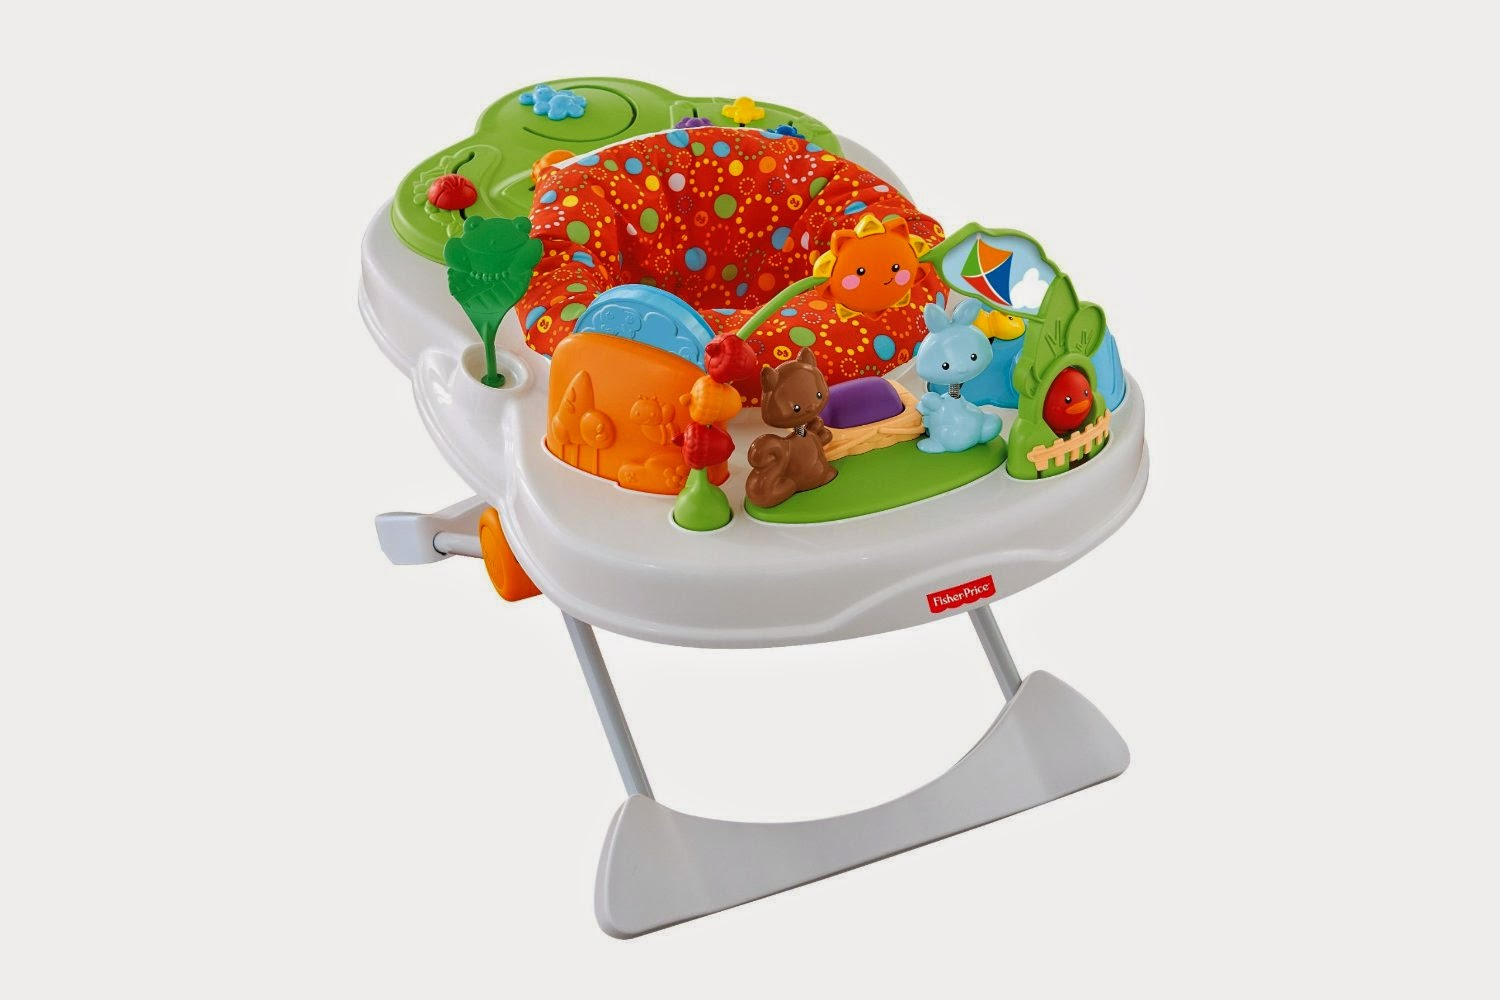 Mesa Musical Fisher Price Libros Y Juguetes 1demagiaxfa Juguetes Fisher Price